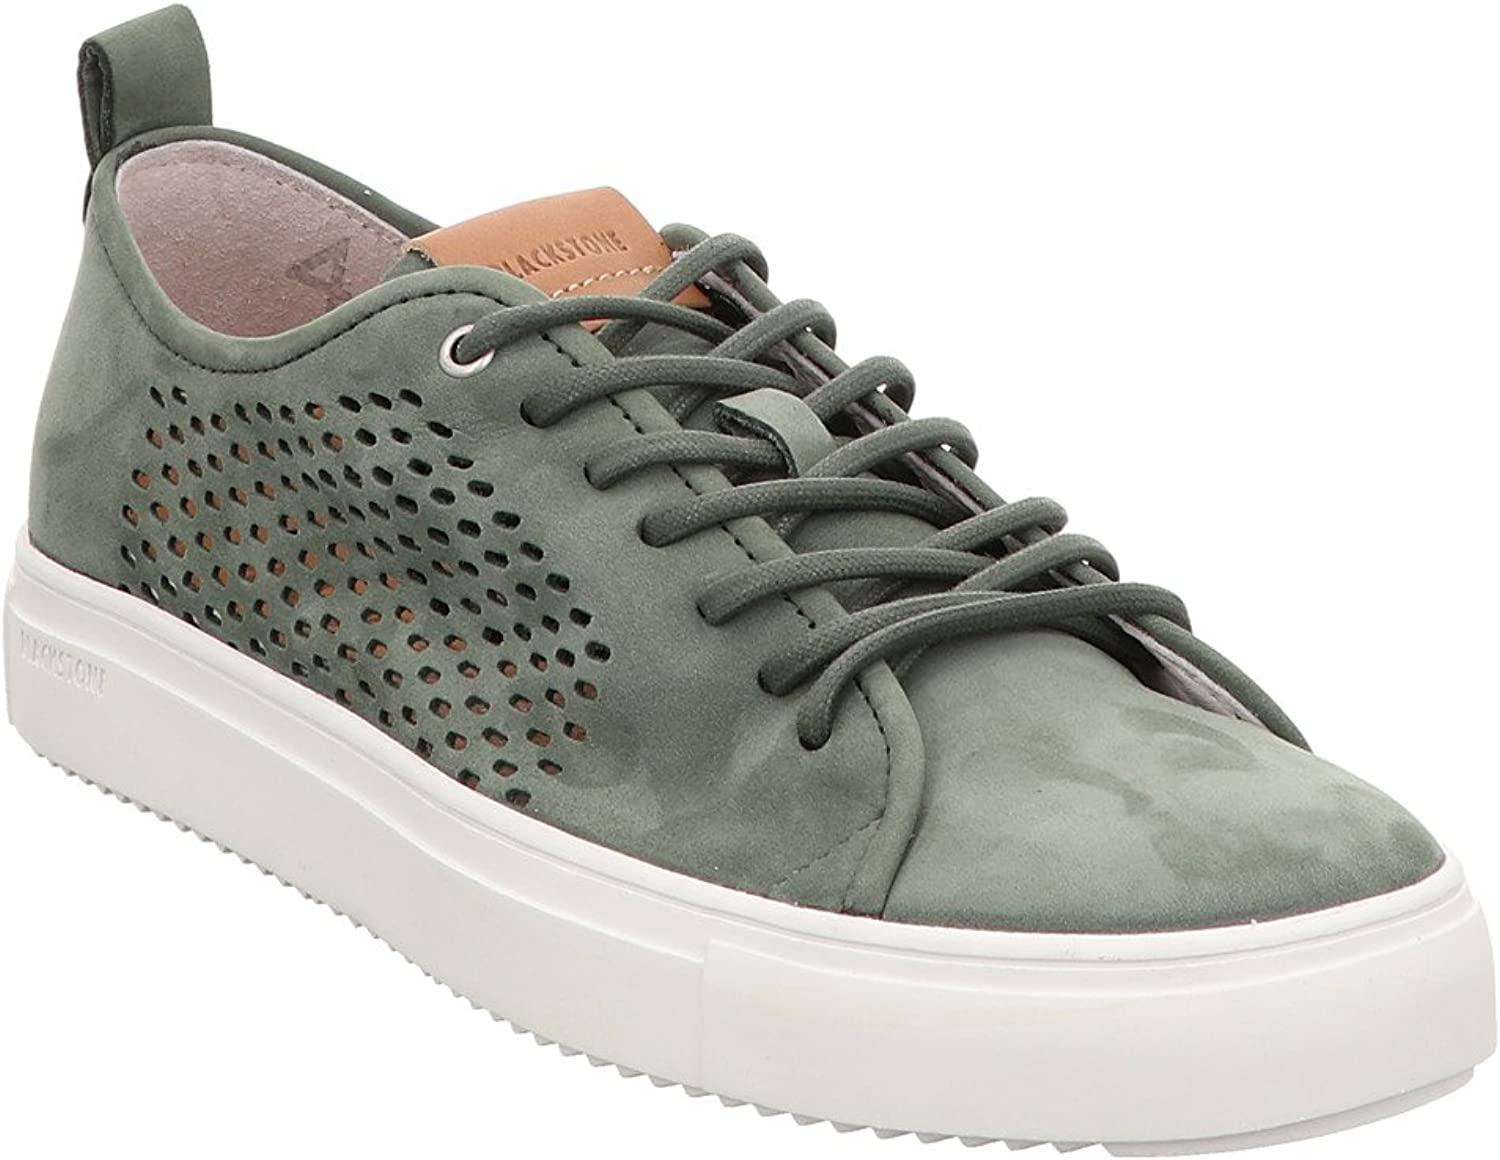 Blackstone Men's's Pm50 Hi-Top Trainers